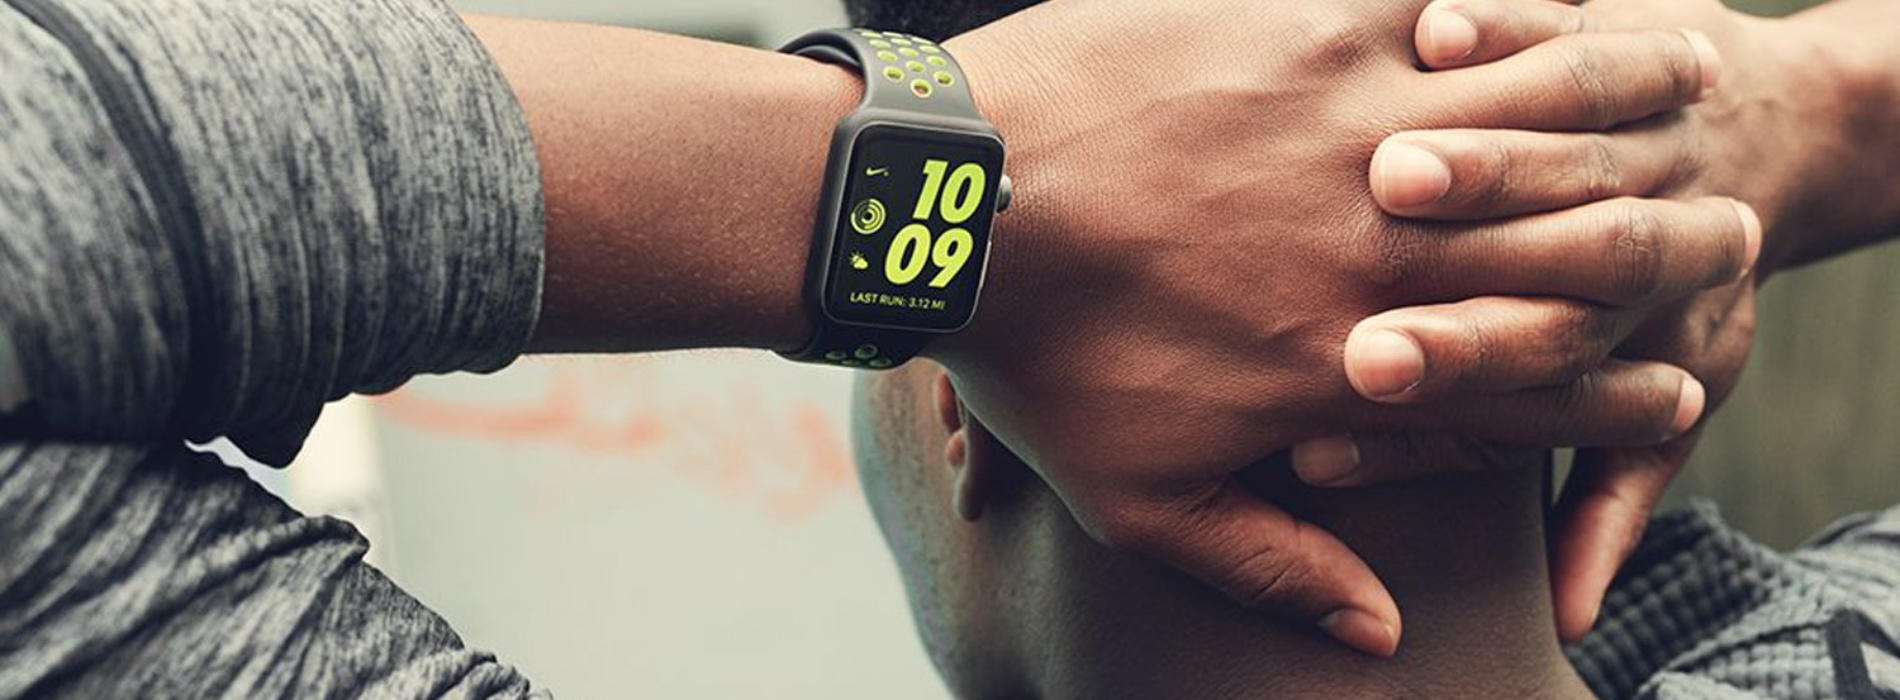 Apple Watch Nike+: a nova versão mais desportiva do smartwatch da Apple chega hoje